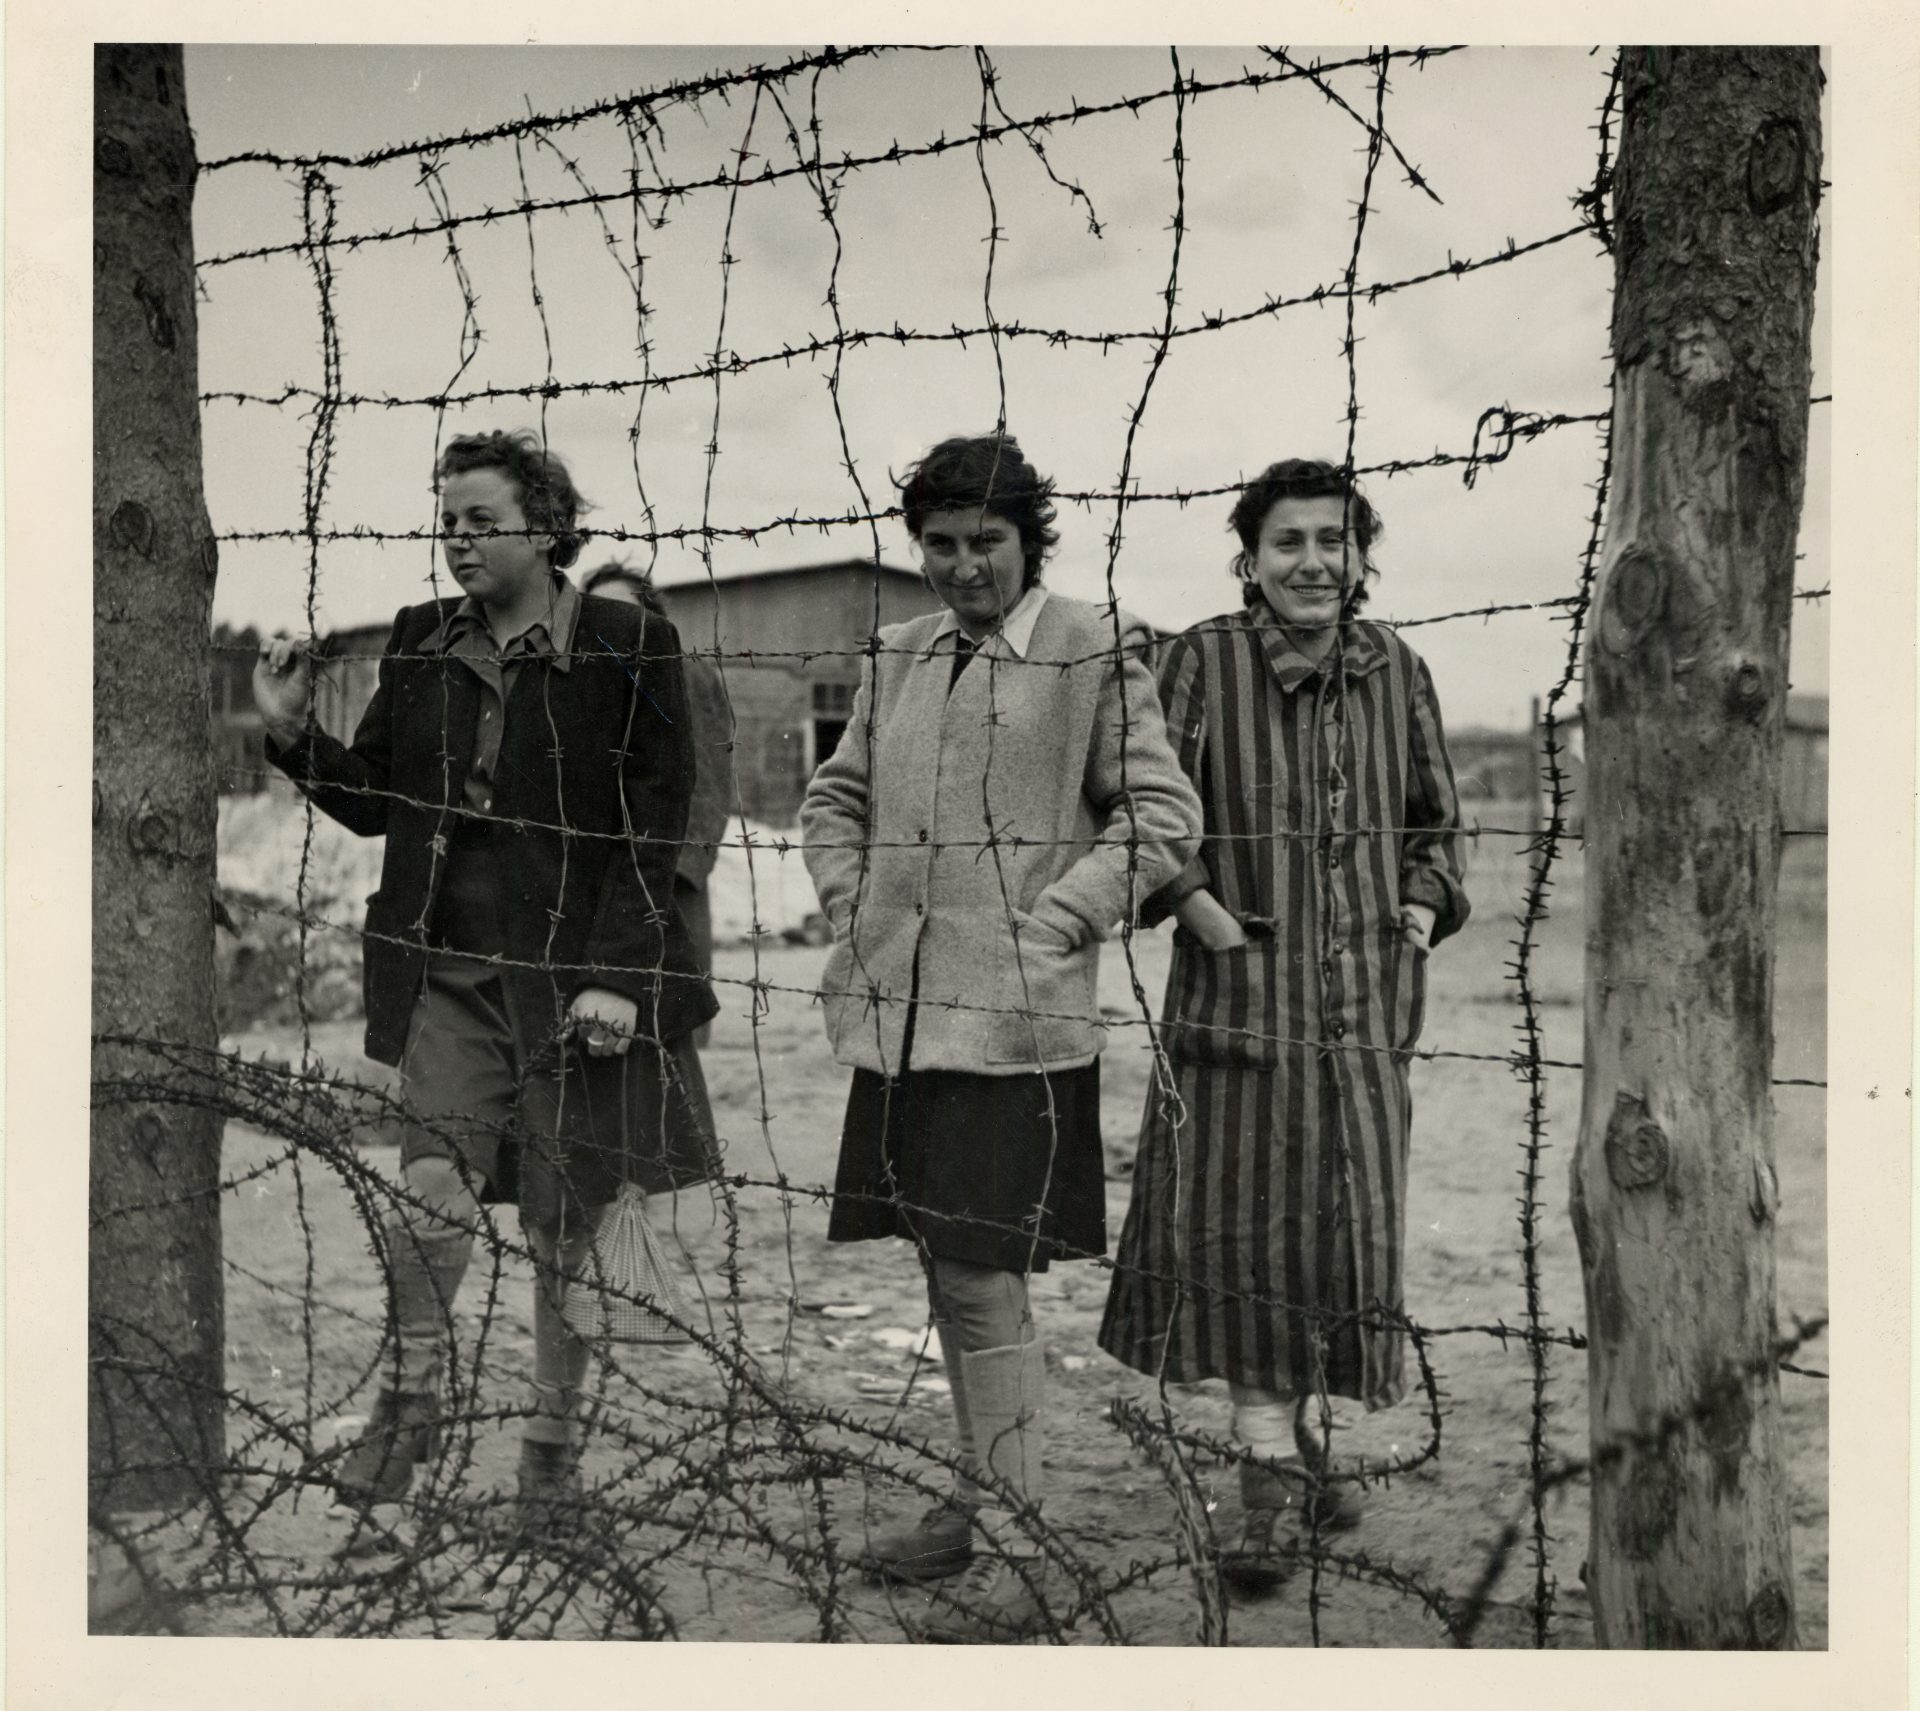 Three women standing behind a barbed wire fence at the Bergen-Belsen concentration camp after liberation. Germany, 1945.